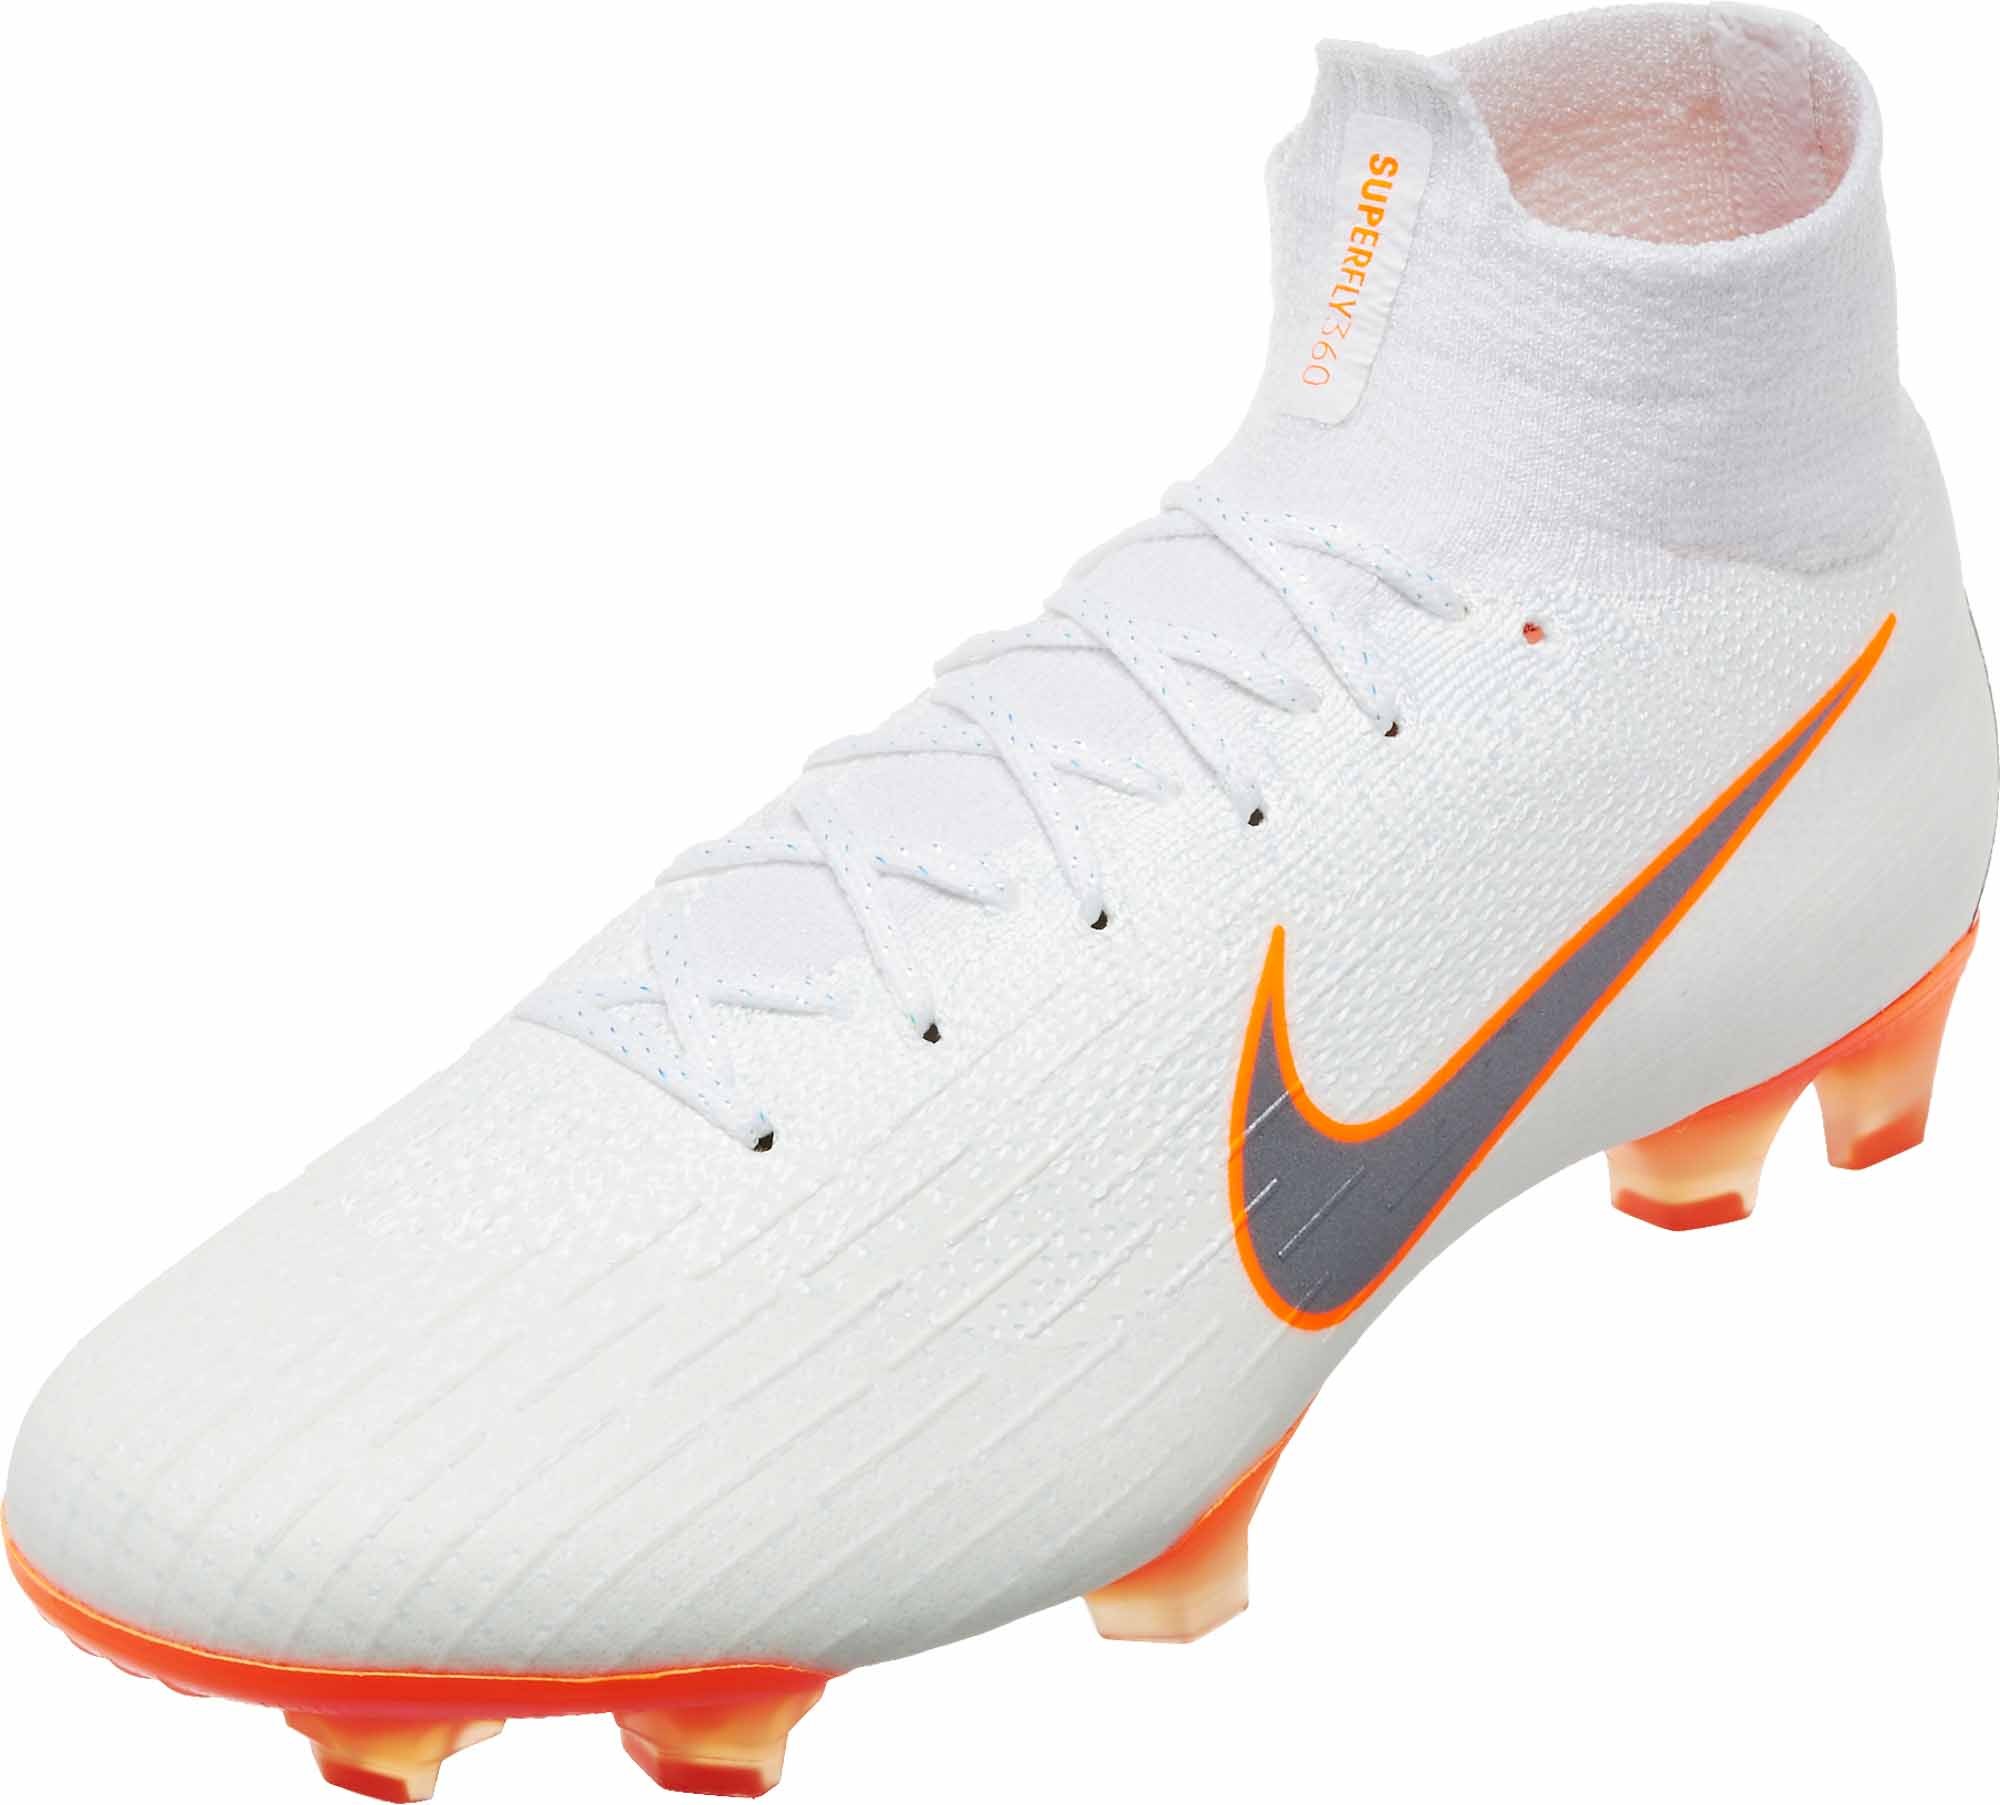 70d2b8eb1 Nike Mercurial Superfly 6 Elite FG - White   Metallic Cool Grey ...